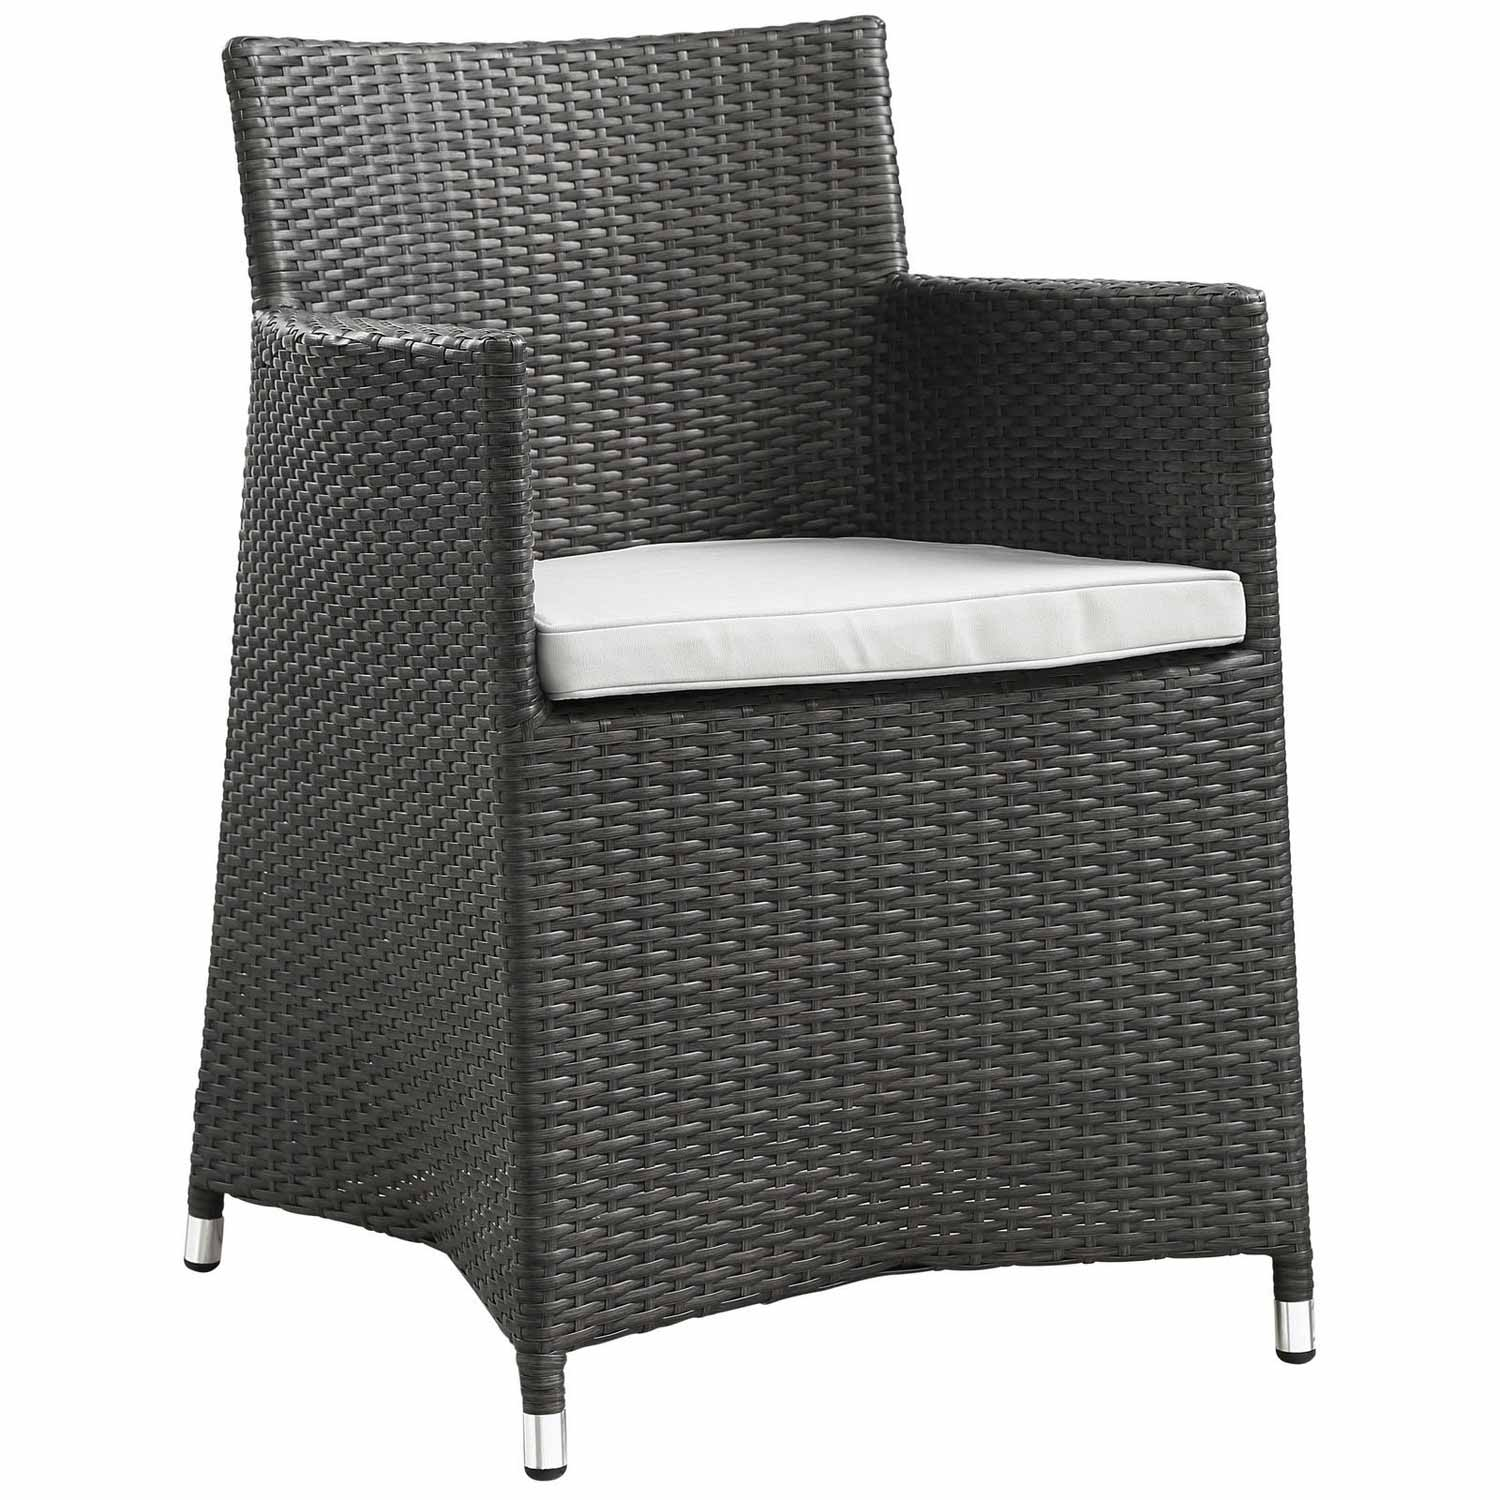 Modway Junction 3 Piece Outdoor Patio Wicker Dining Set - Brown/White